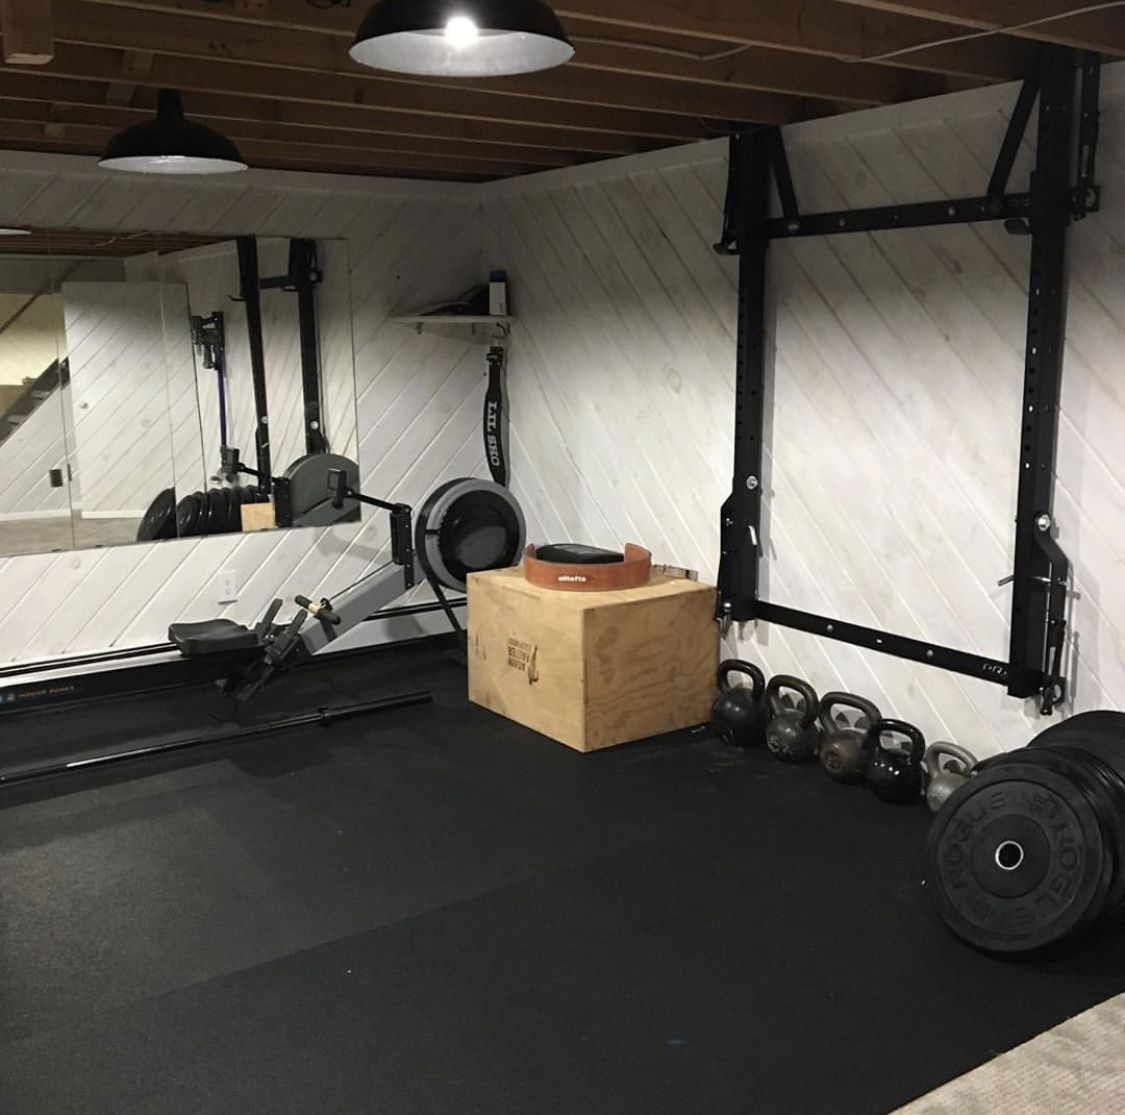 Home Gym Design Ideas Basement: Home Office Ideas - 611011943134168943 In 2020